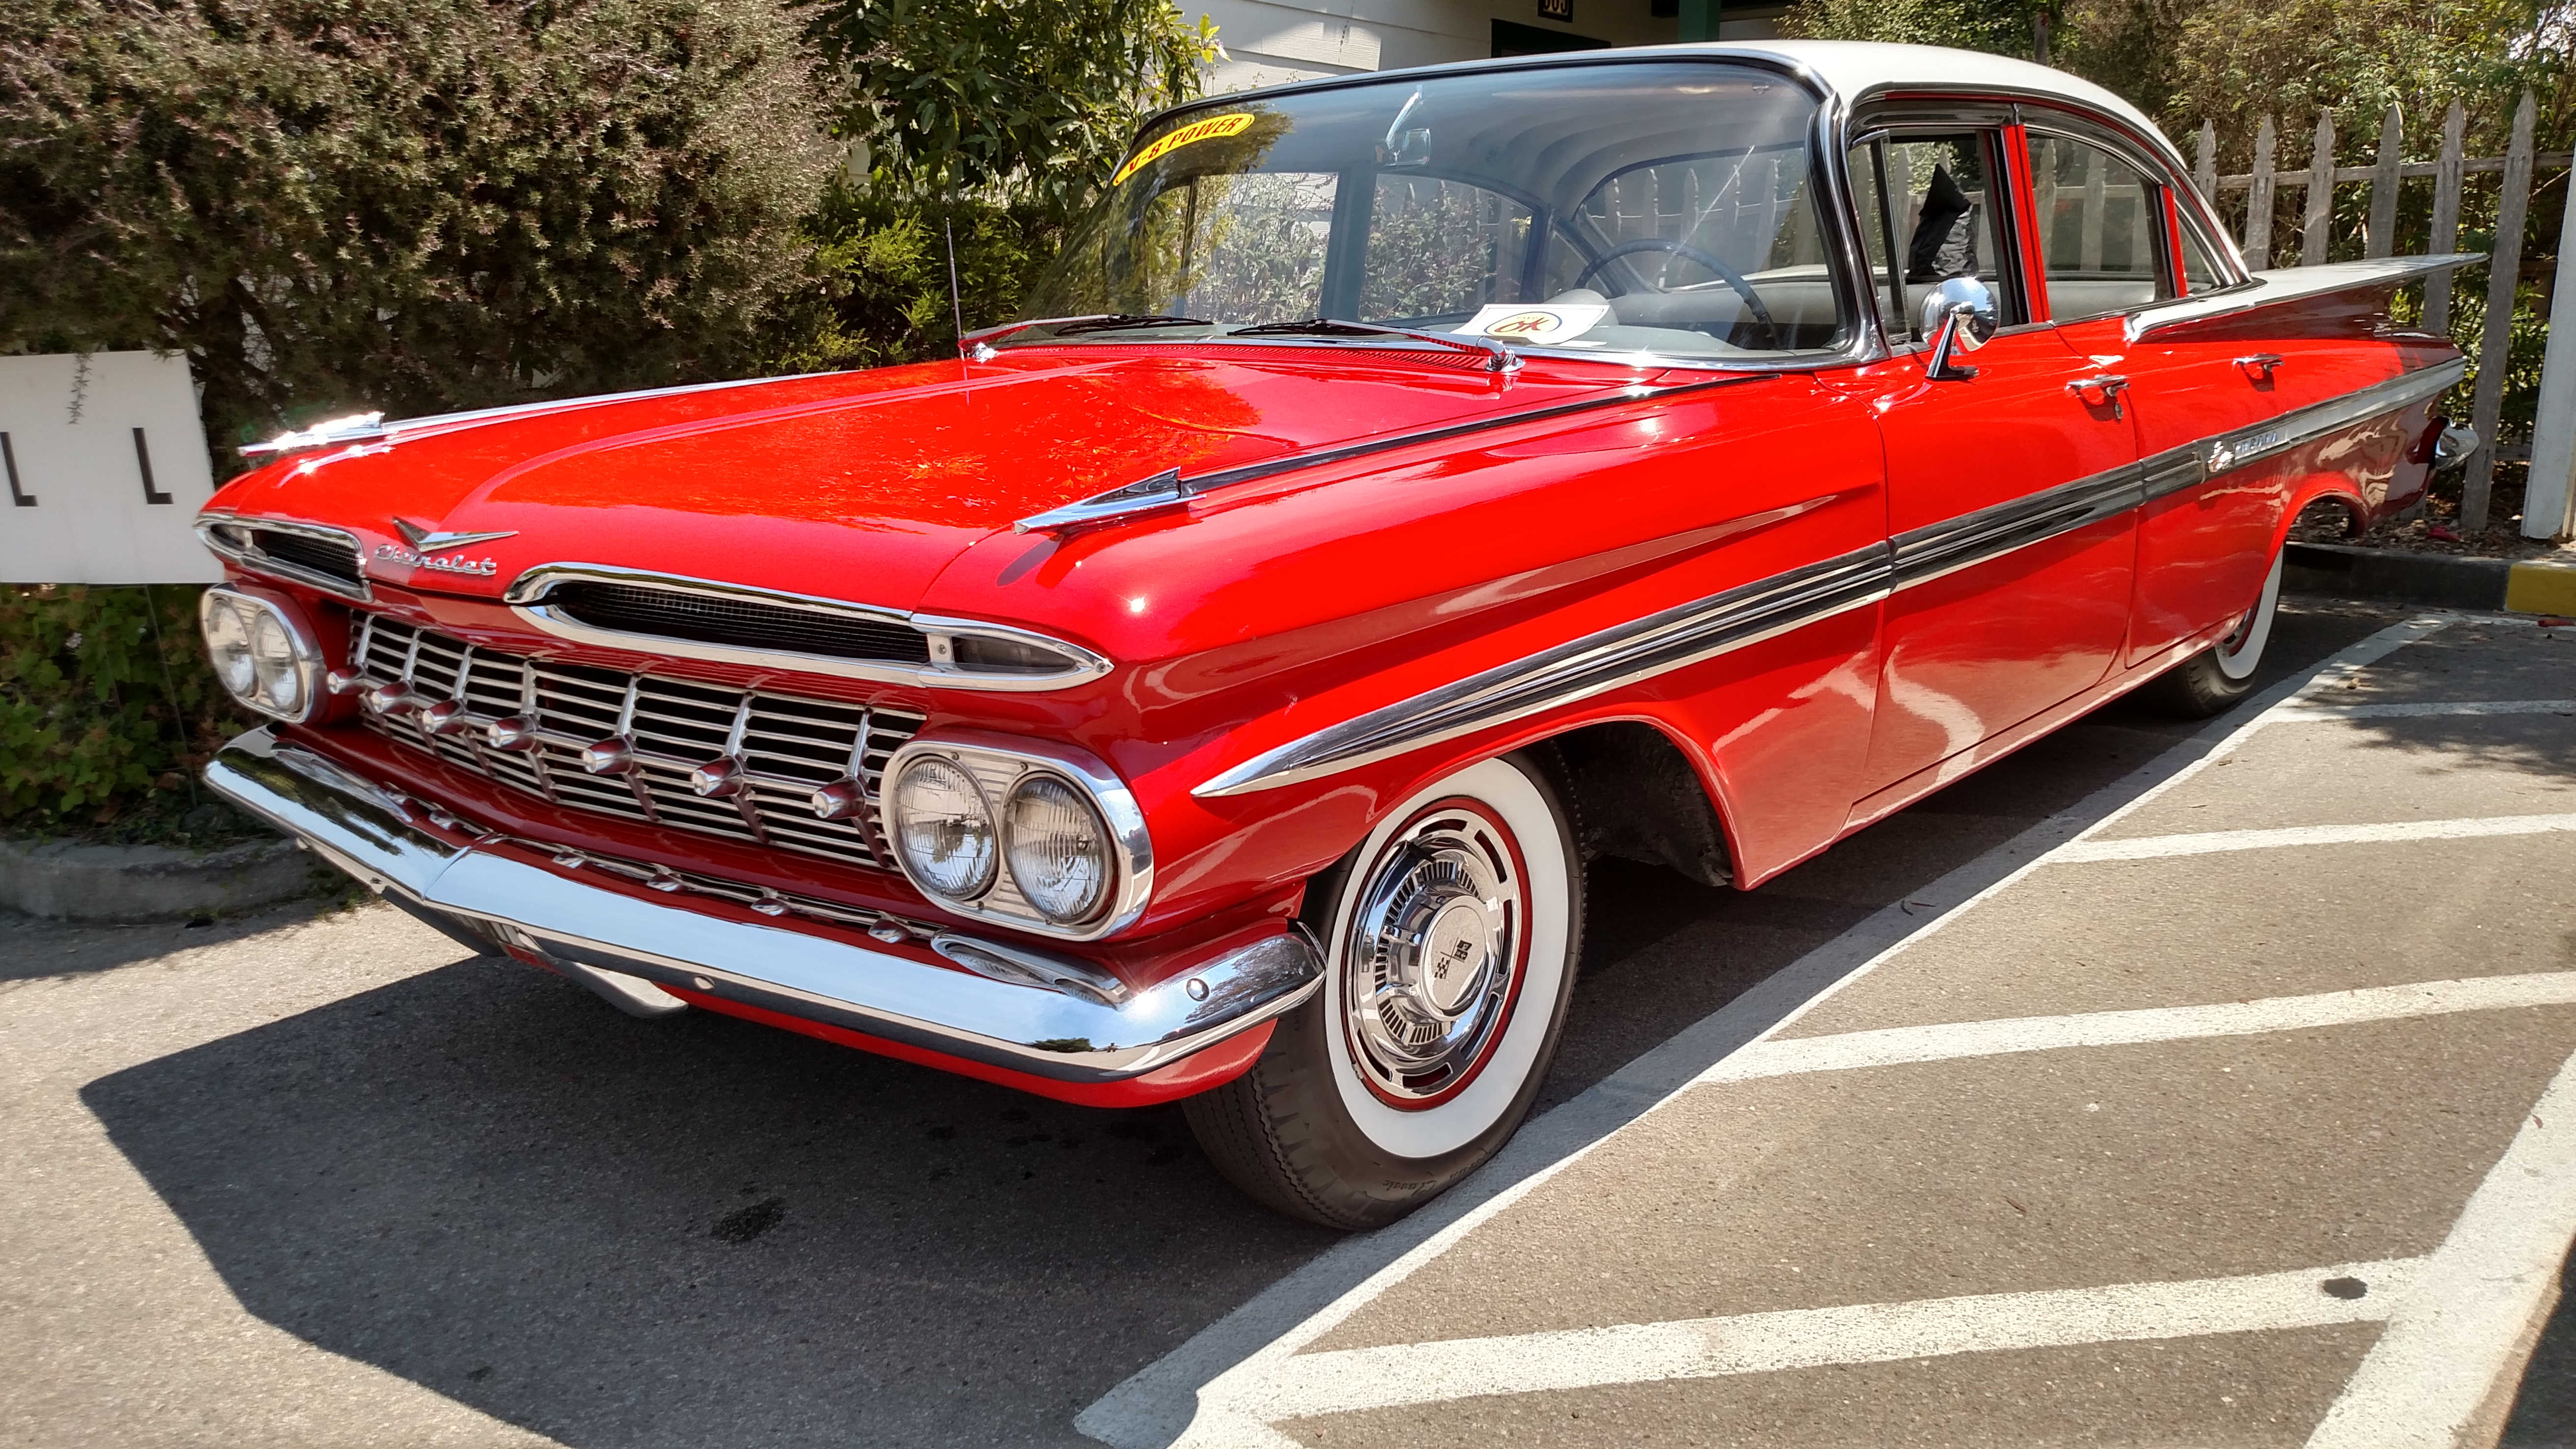 Car Show - IMG_20170708_134713058_HDR